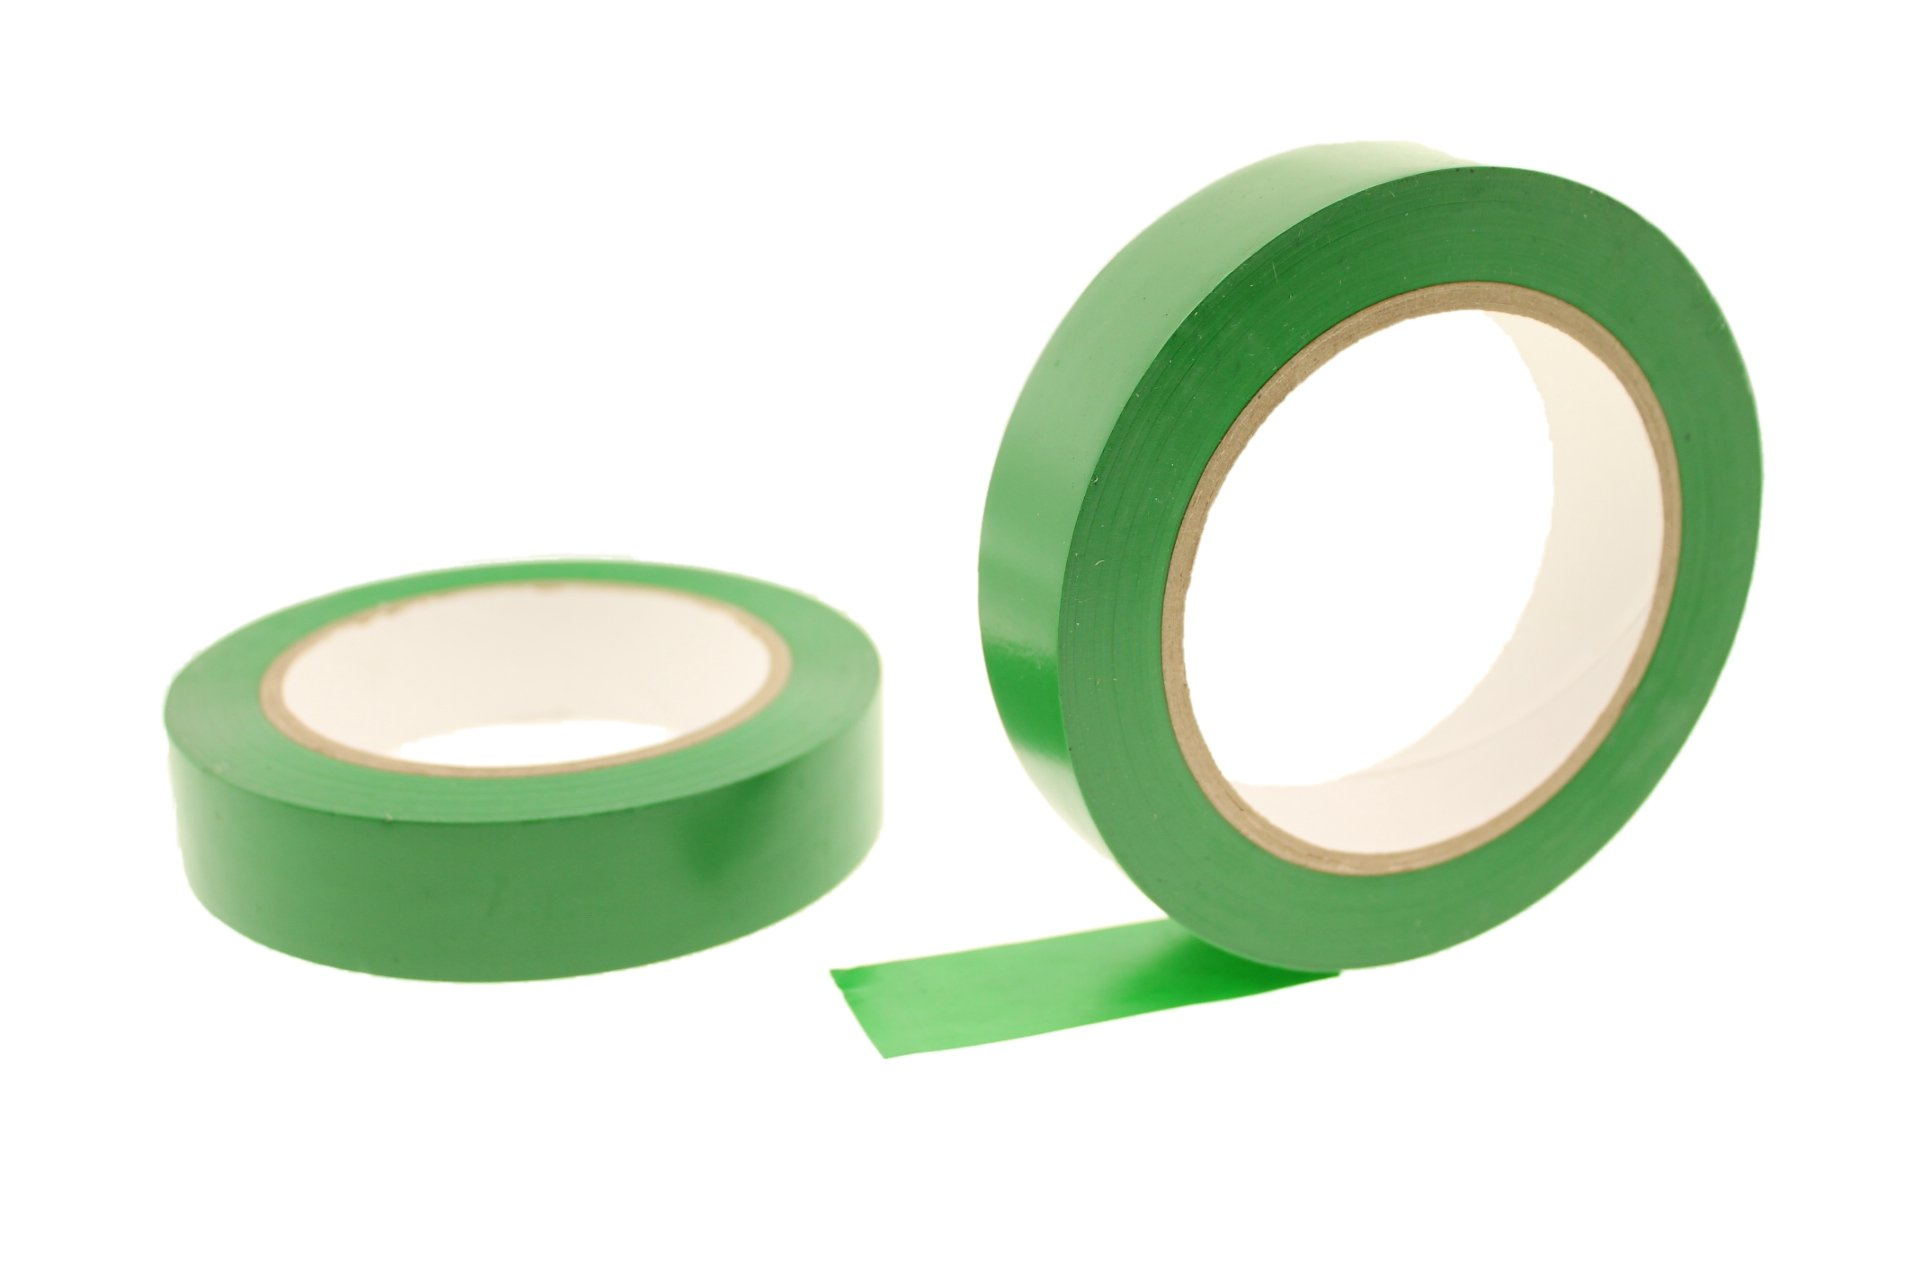 2pk 1'' GREEN Durable Rubber Adhesive PVC Vinyl Sealing Coding Warning OSHA Caution Marking Safety Electrical Removable Floor Tape (.94 in 24MM) 36 yard 7 mil